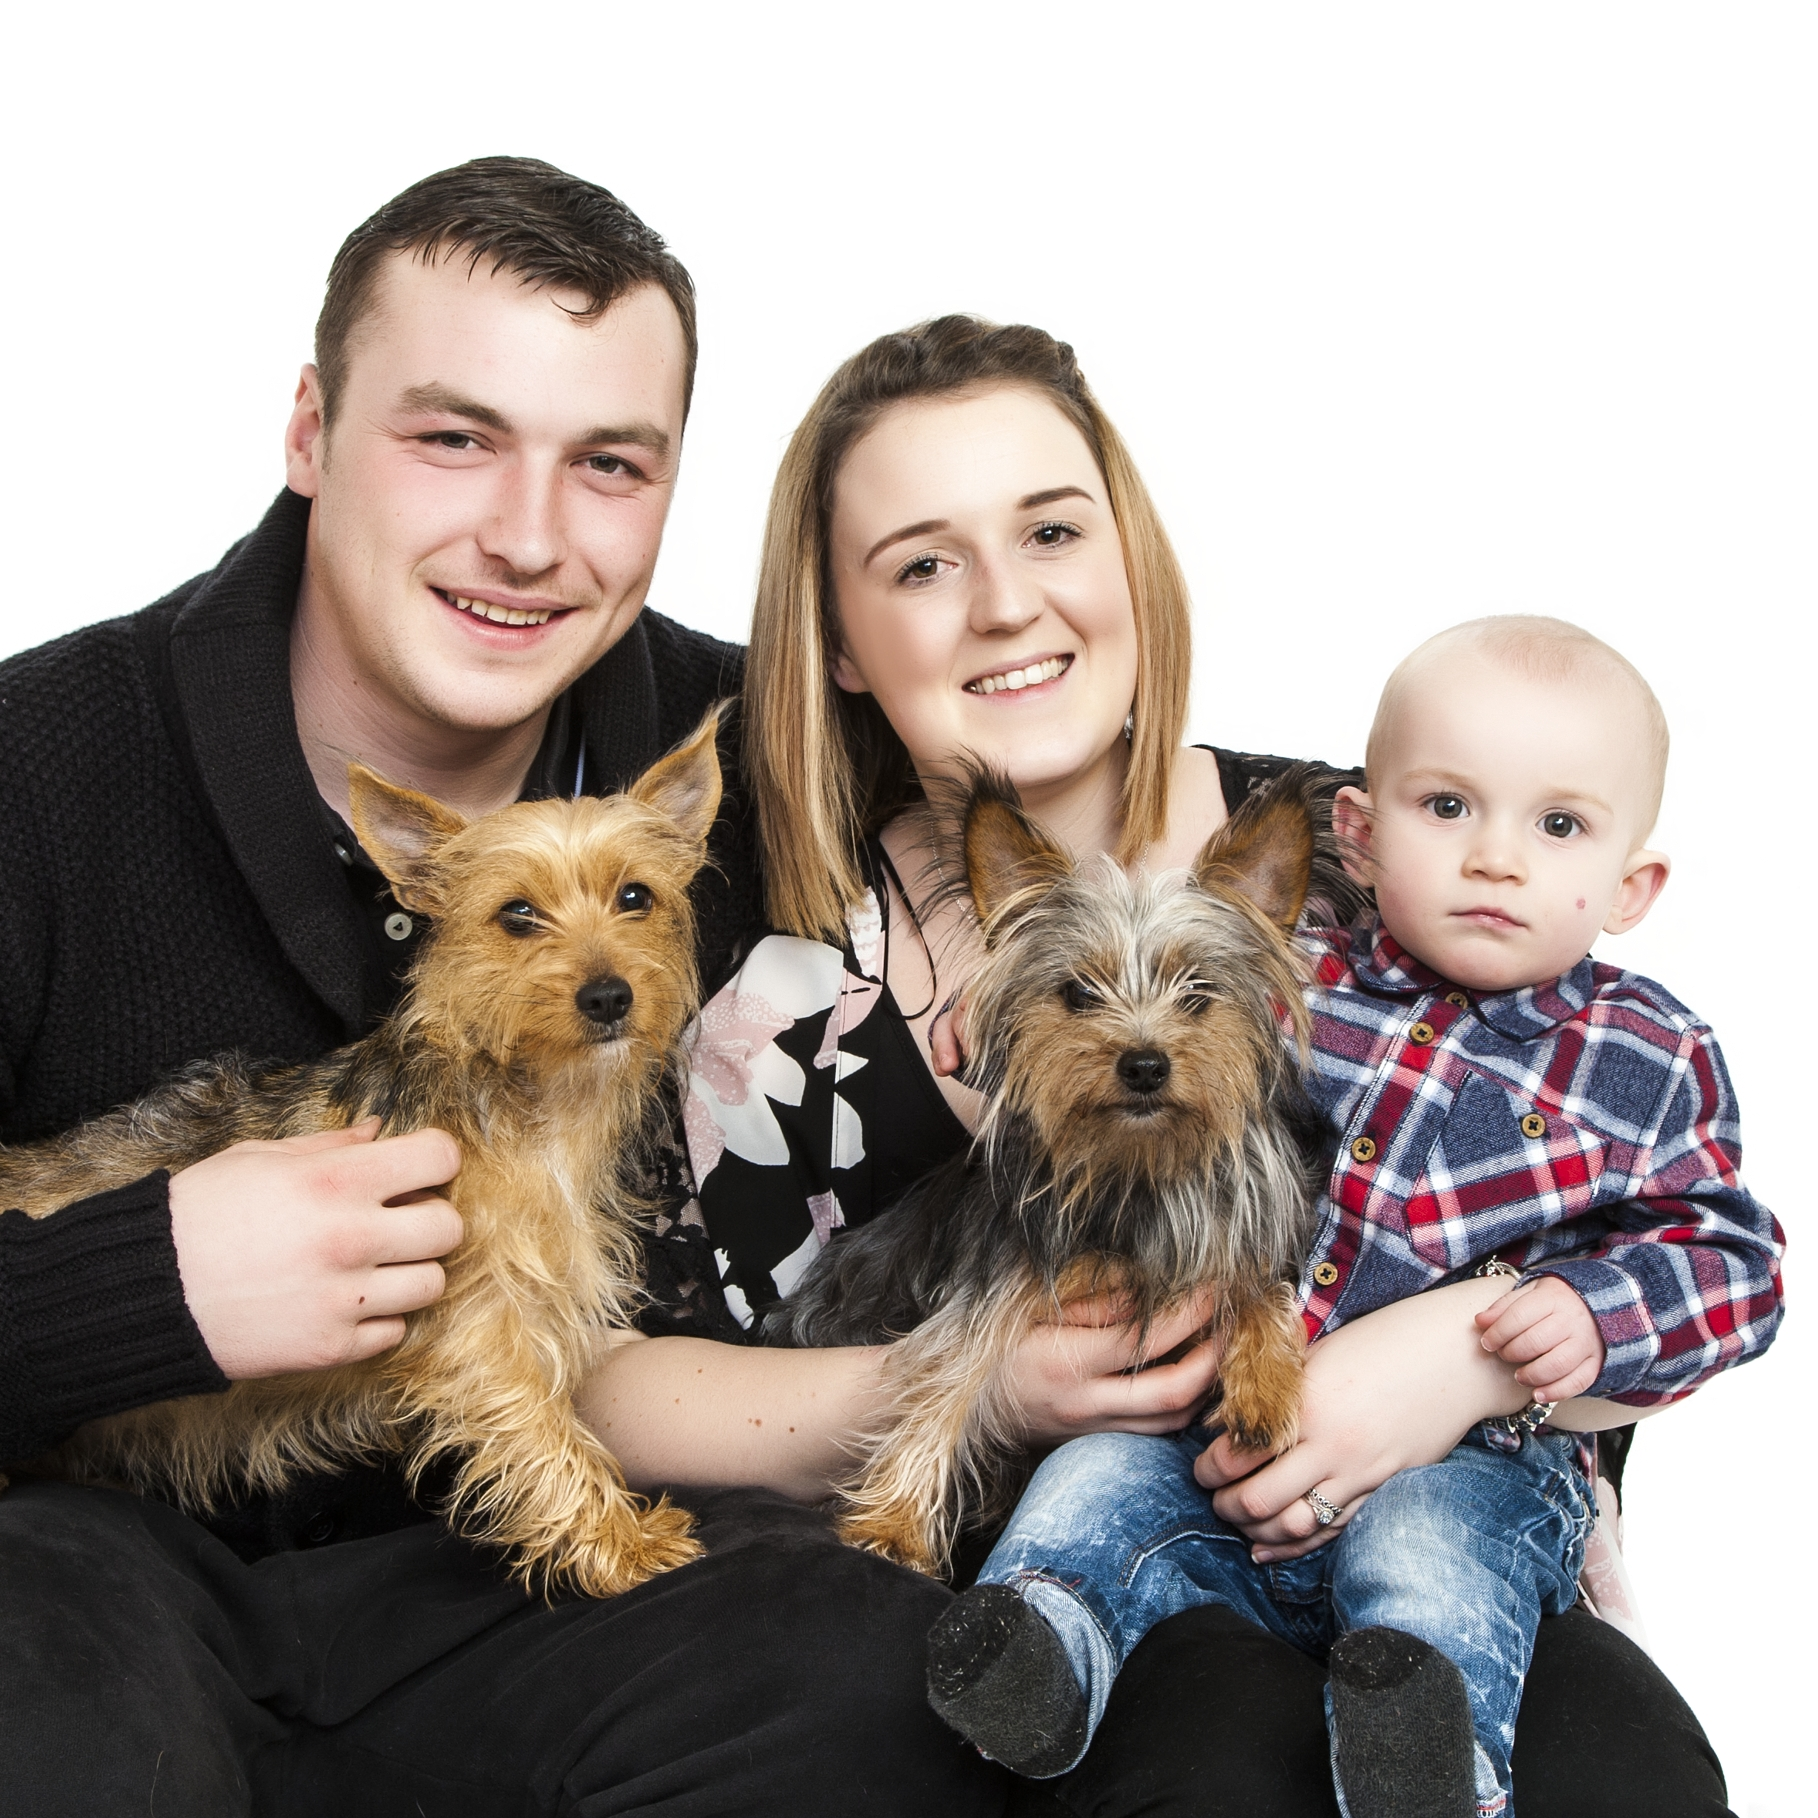 pet-photography-family-photographer-zigzag-zig-zag-photography-photo-shoot-leicester-dogs-pets-animals.JPG